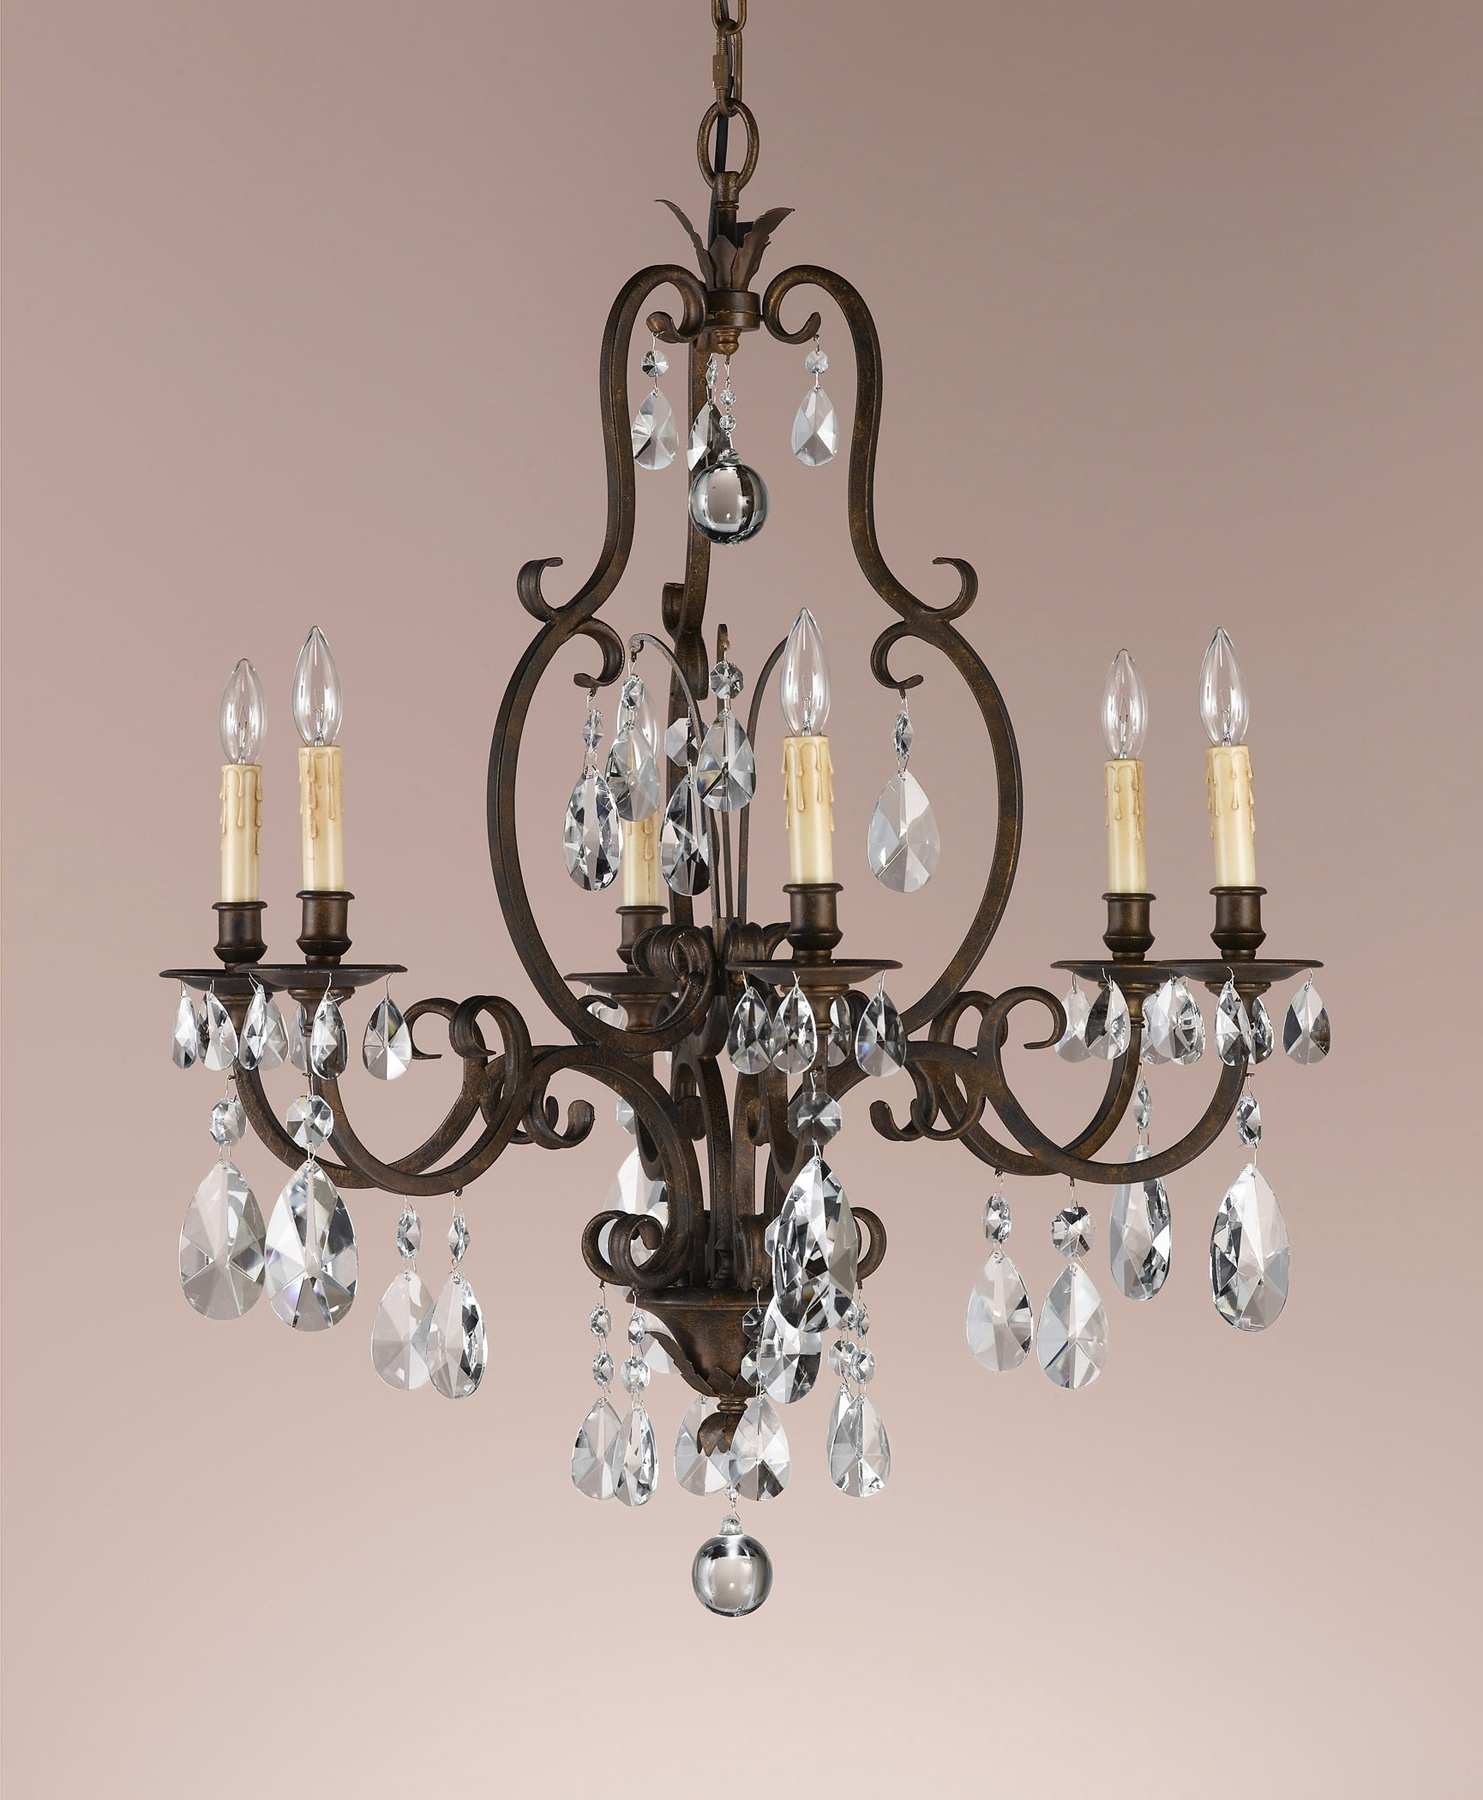 Feiss F2228/6Ats Crystal Salon Maison Six Light Chandelier In Current Feiss Chandeliers (View 8 of 15)